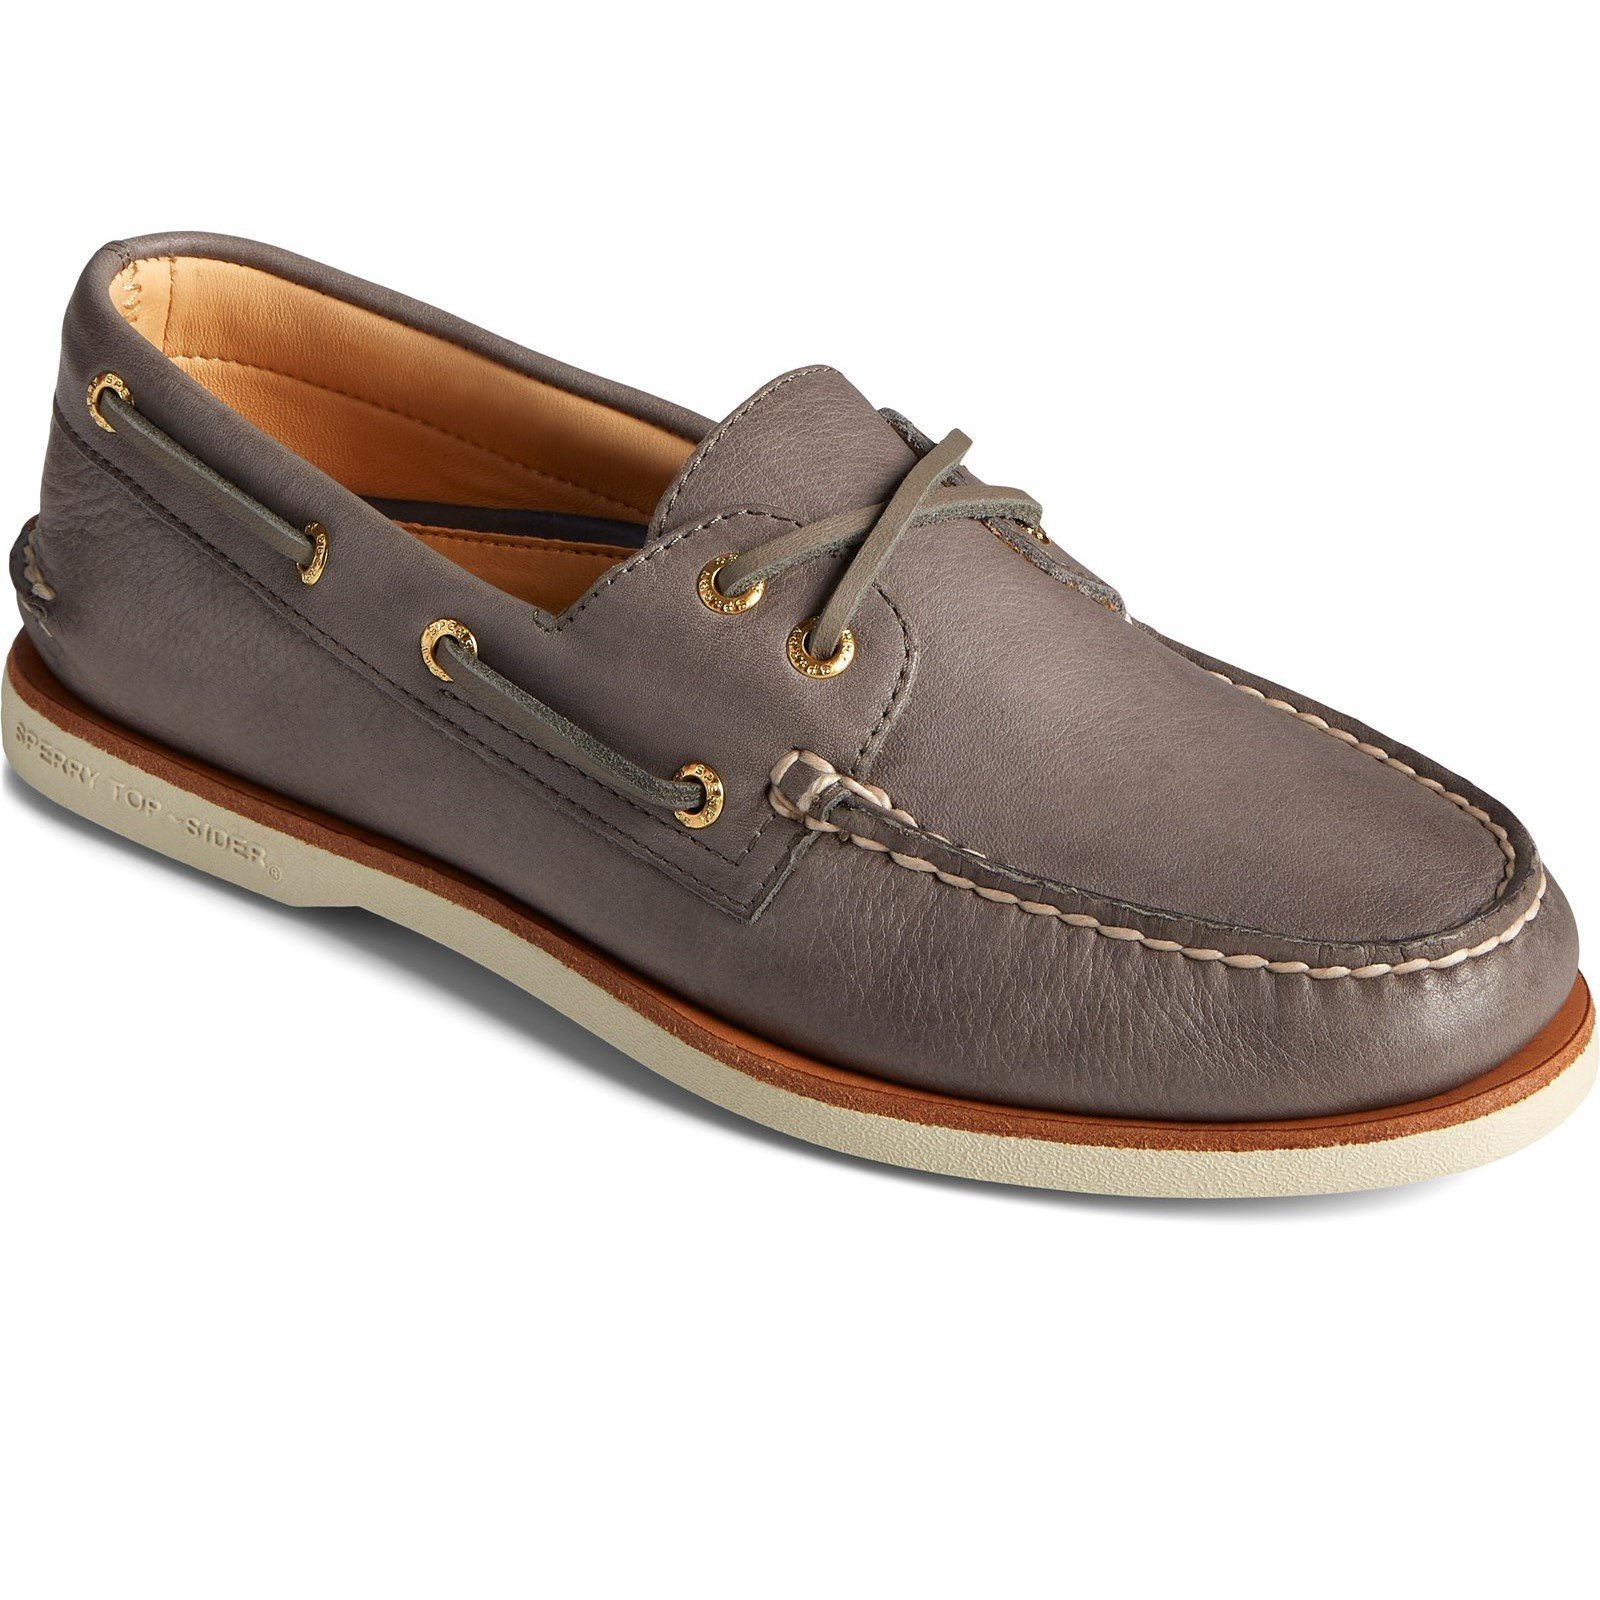 Sperry Men's A/O 2-Eye Boat Shoe Various Colours 32926 - Charcoal 13